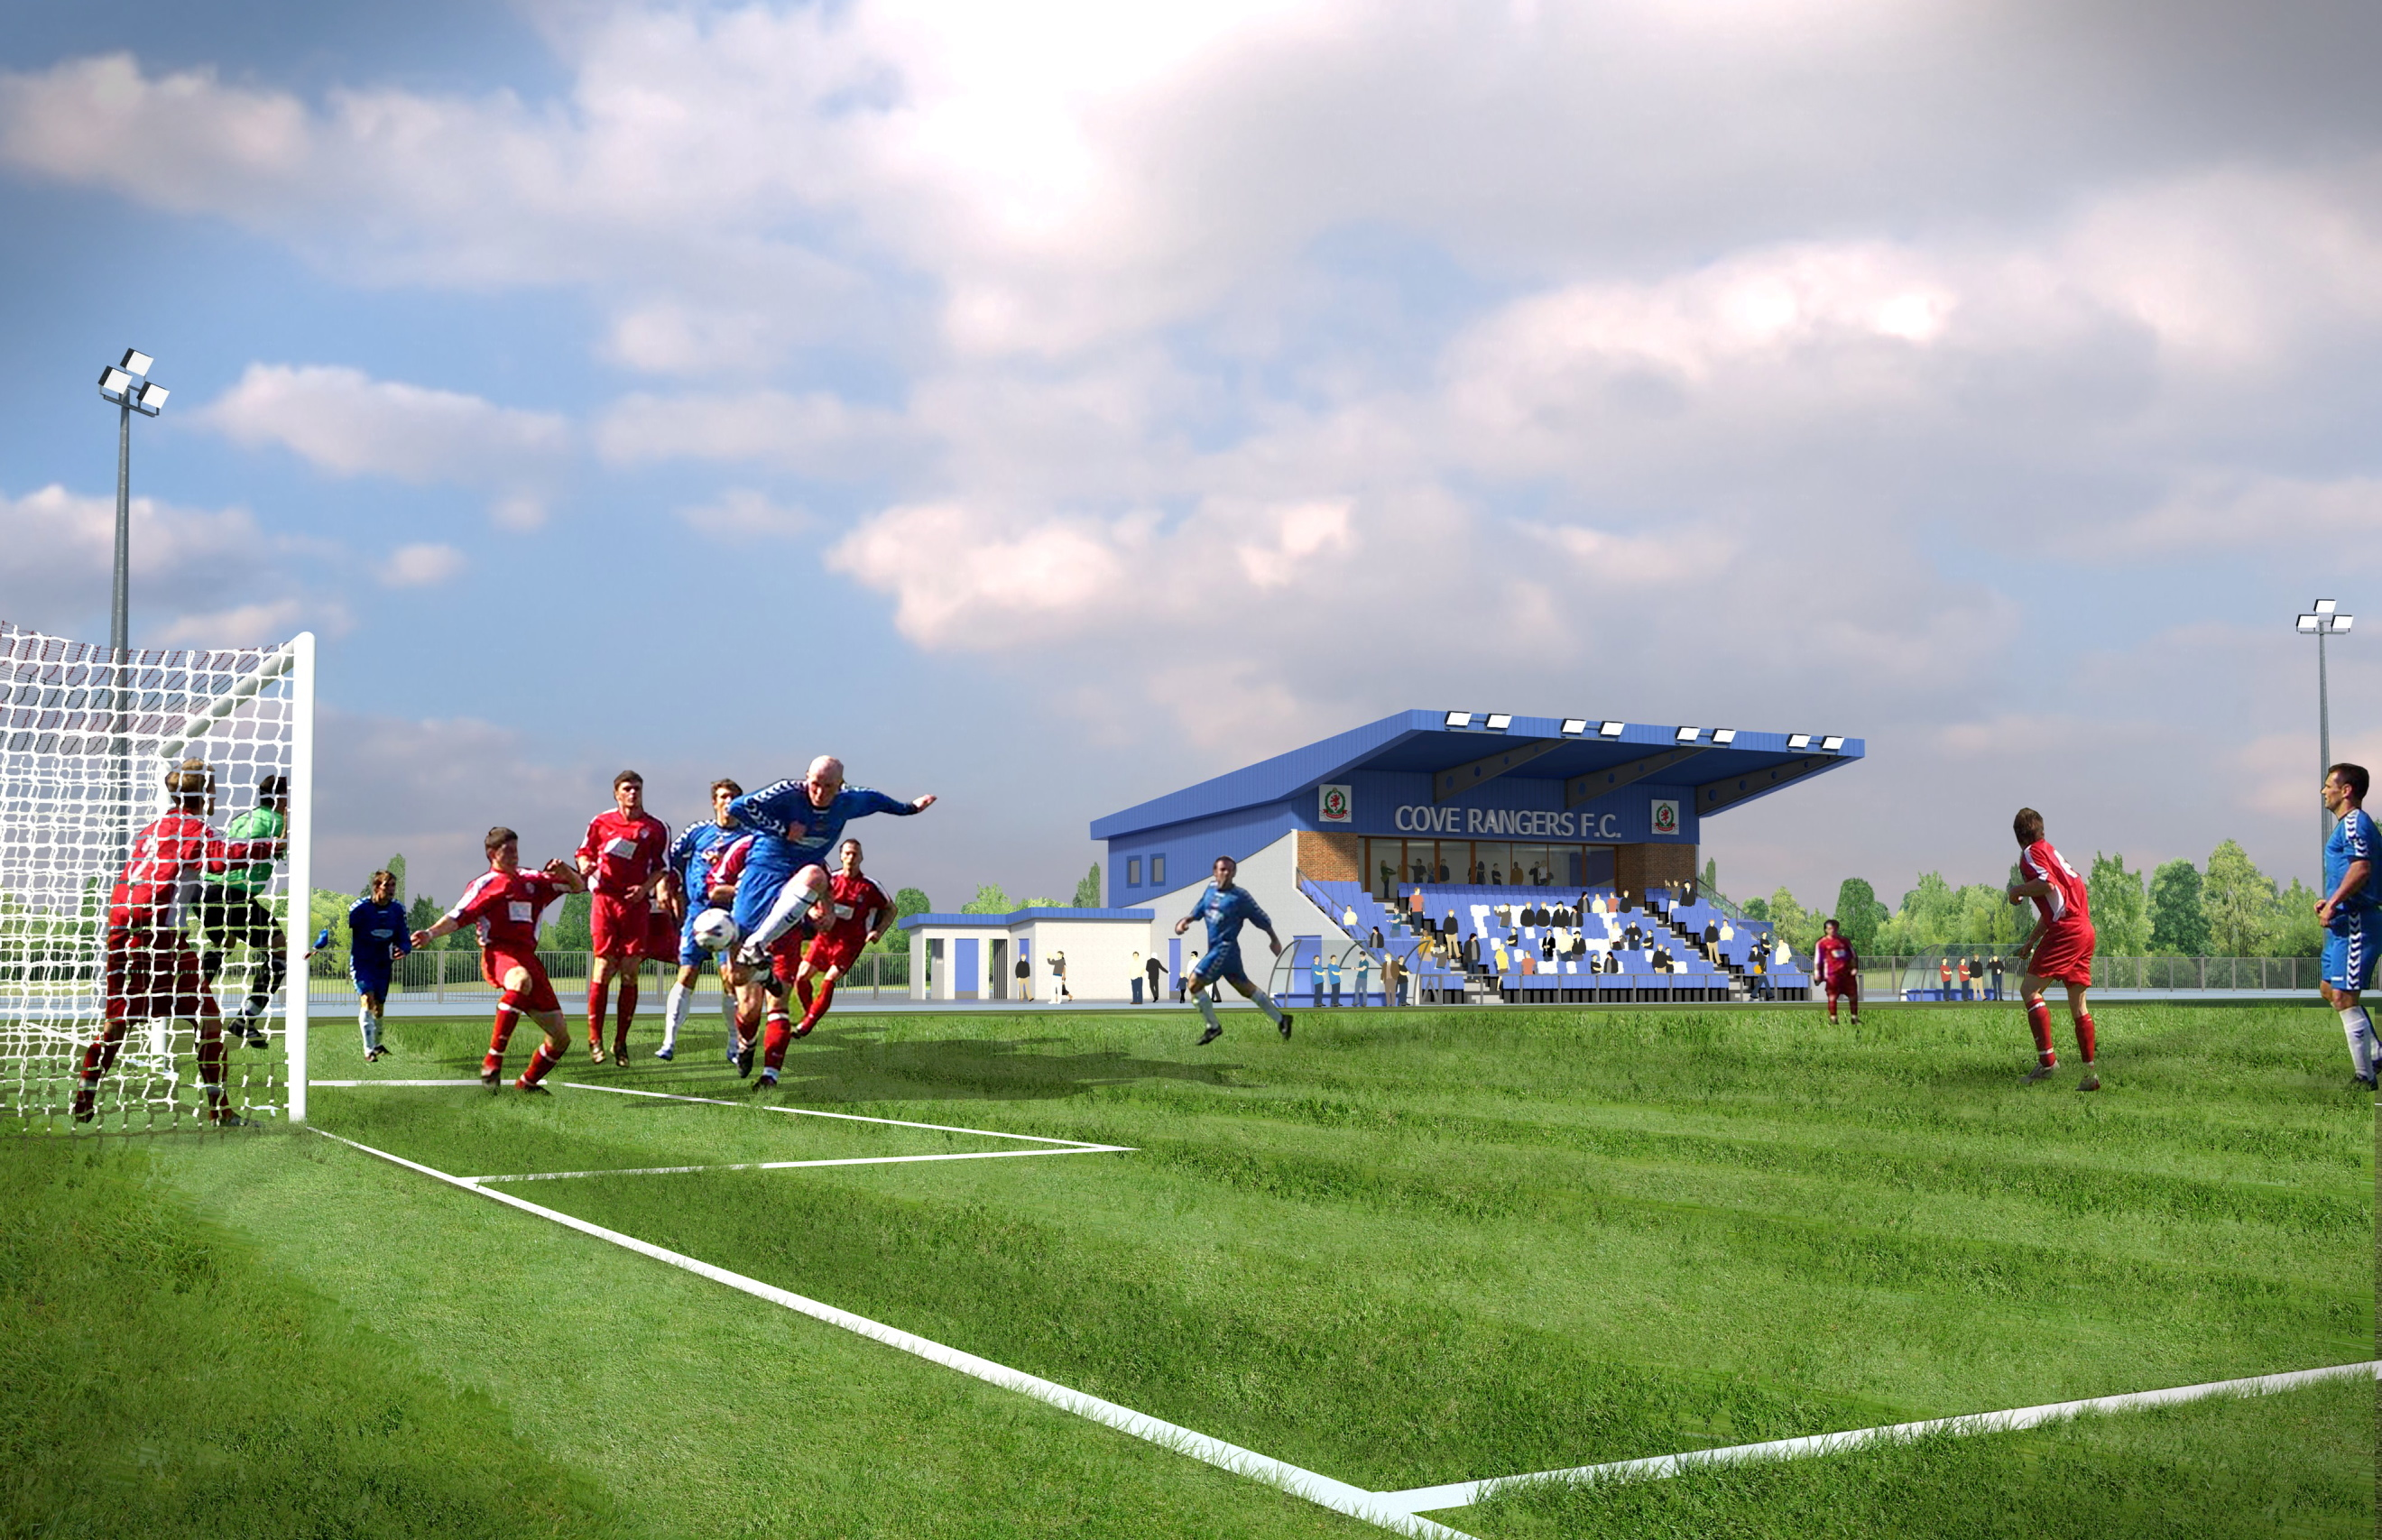 An artist's impression of how Cove Rangers' new ground could look.